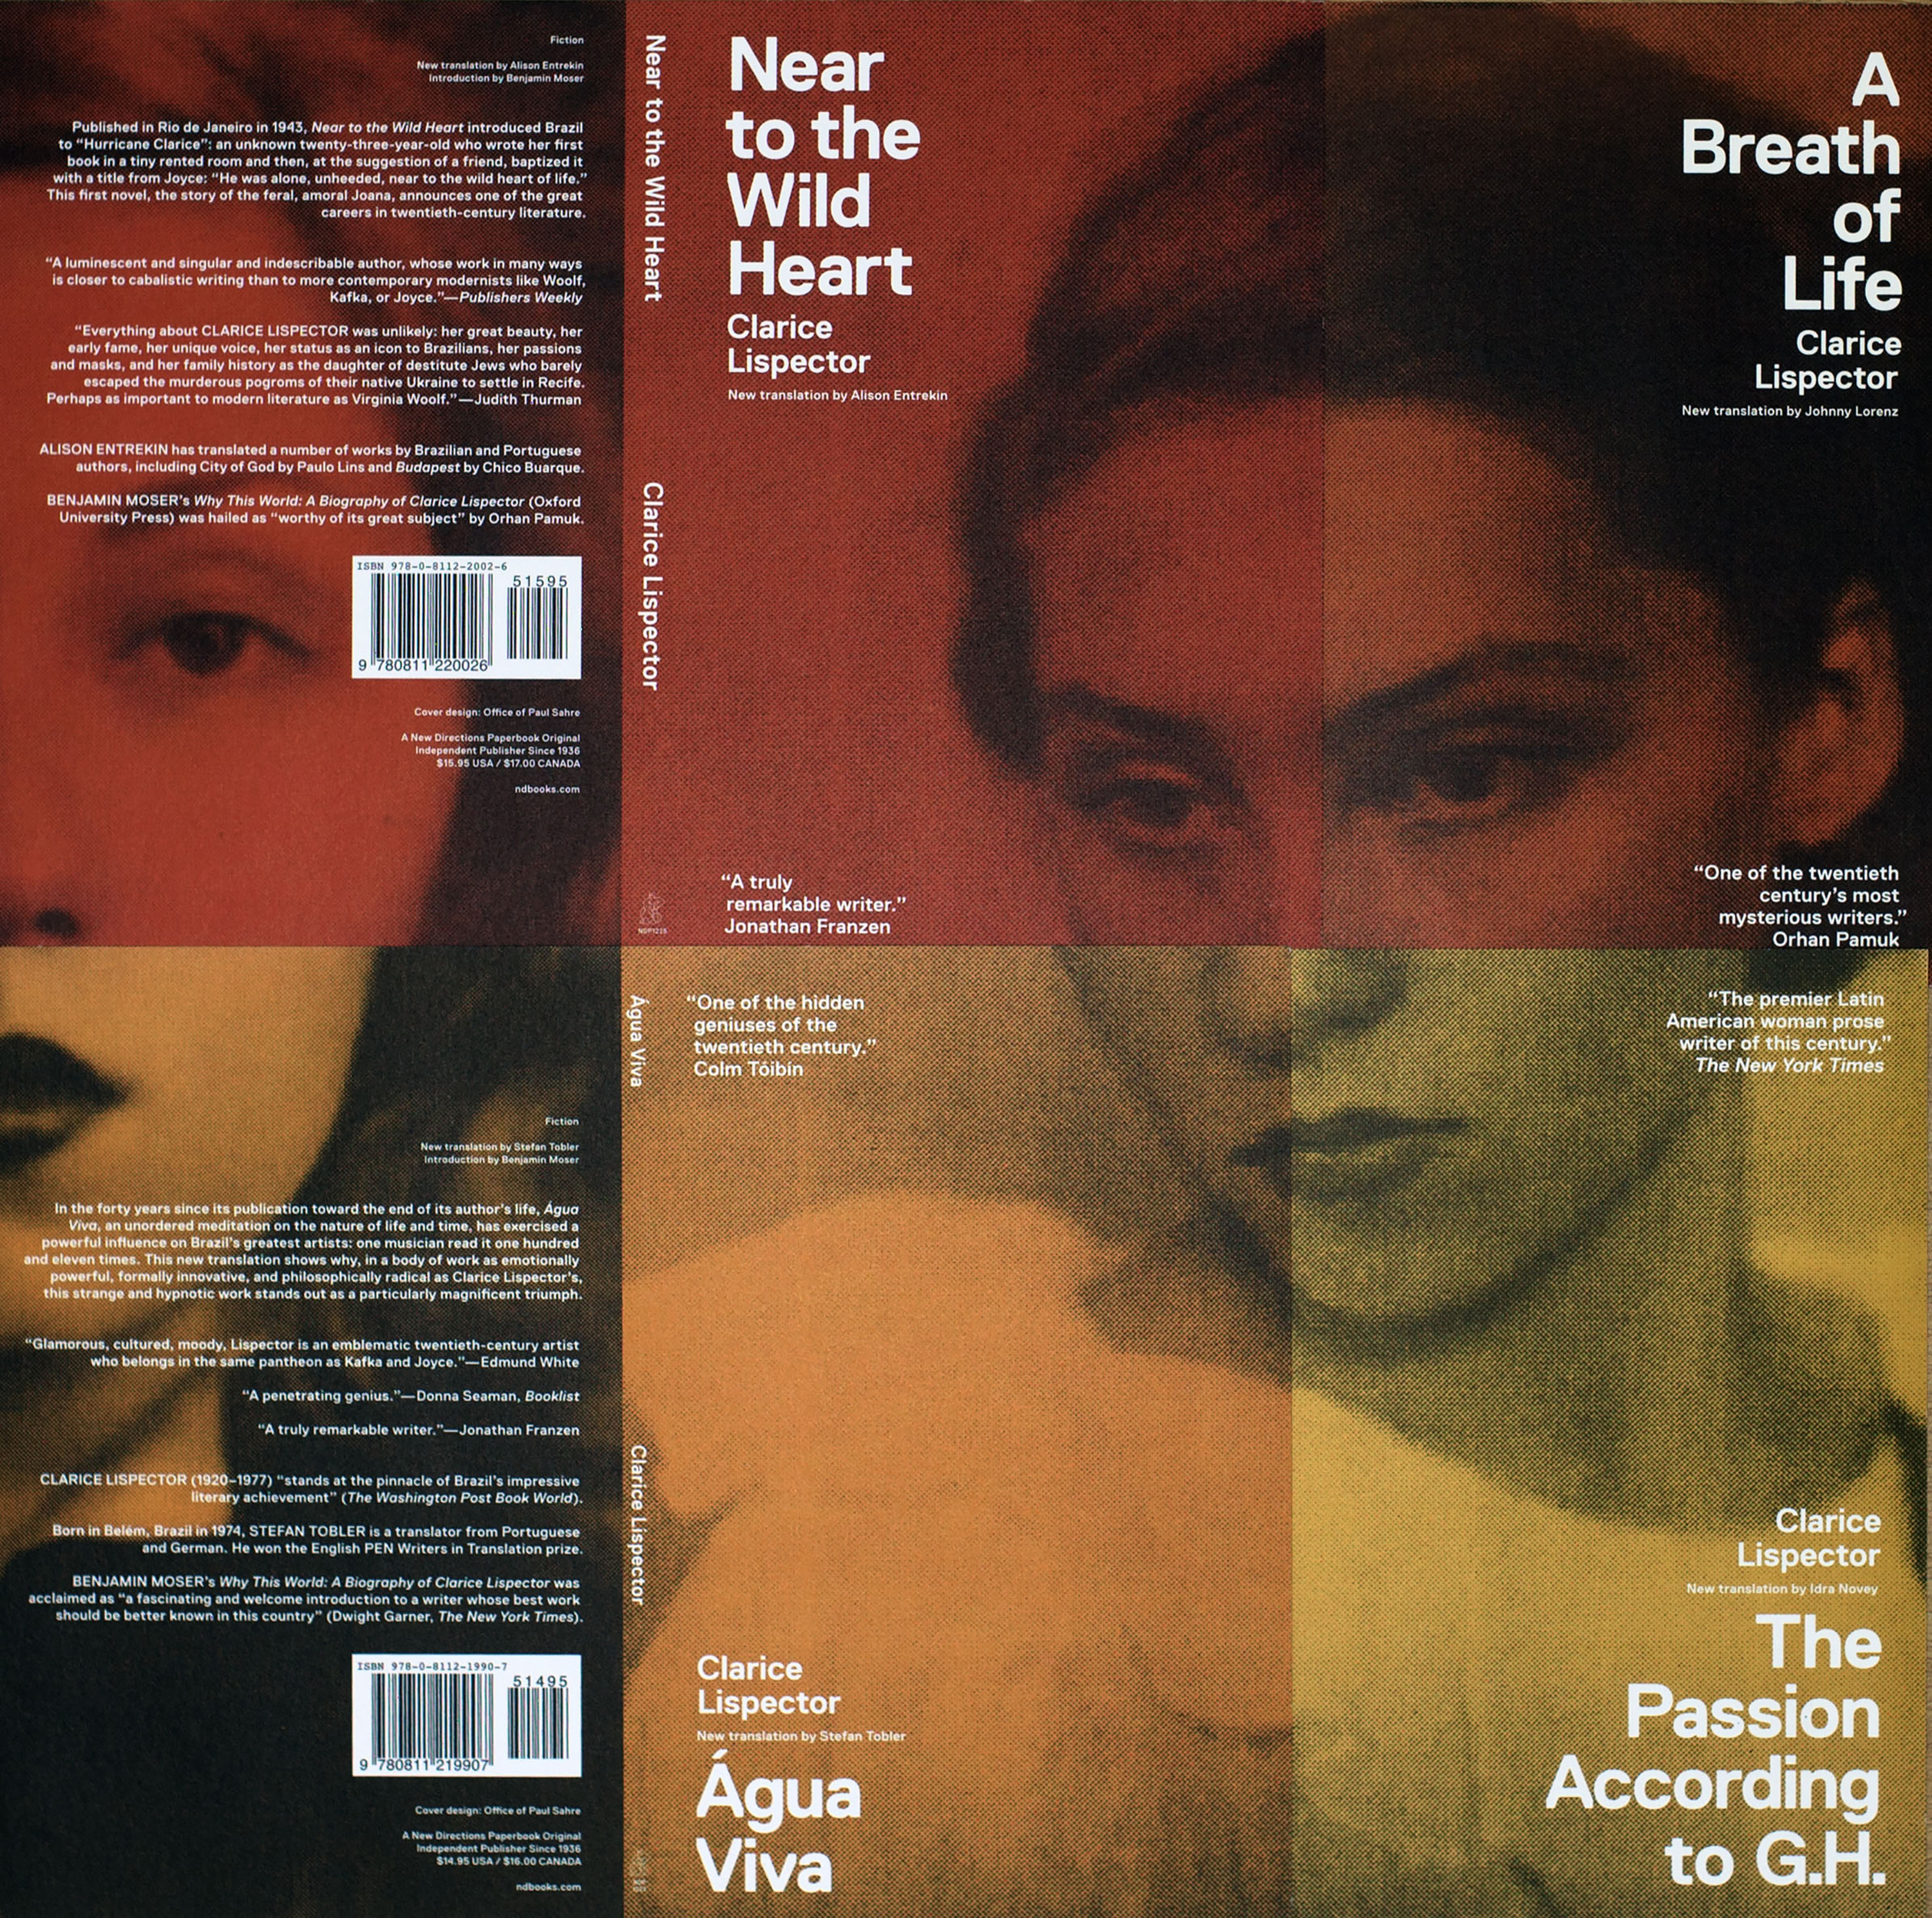 Image of book covers of four different Clarice Lispector novels, each with a different quadrant of Lispector's face.